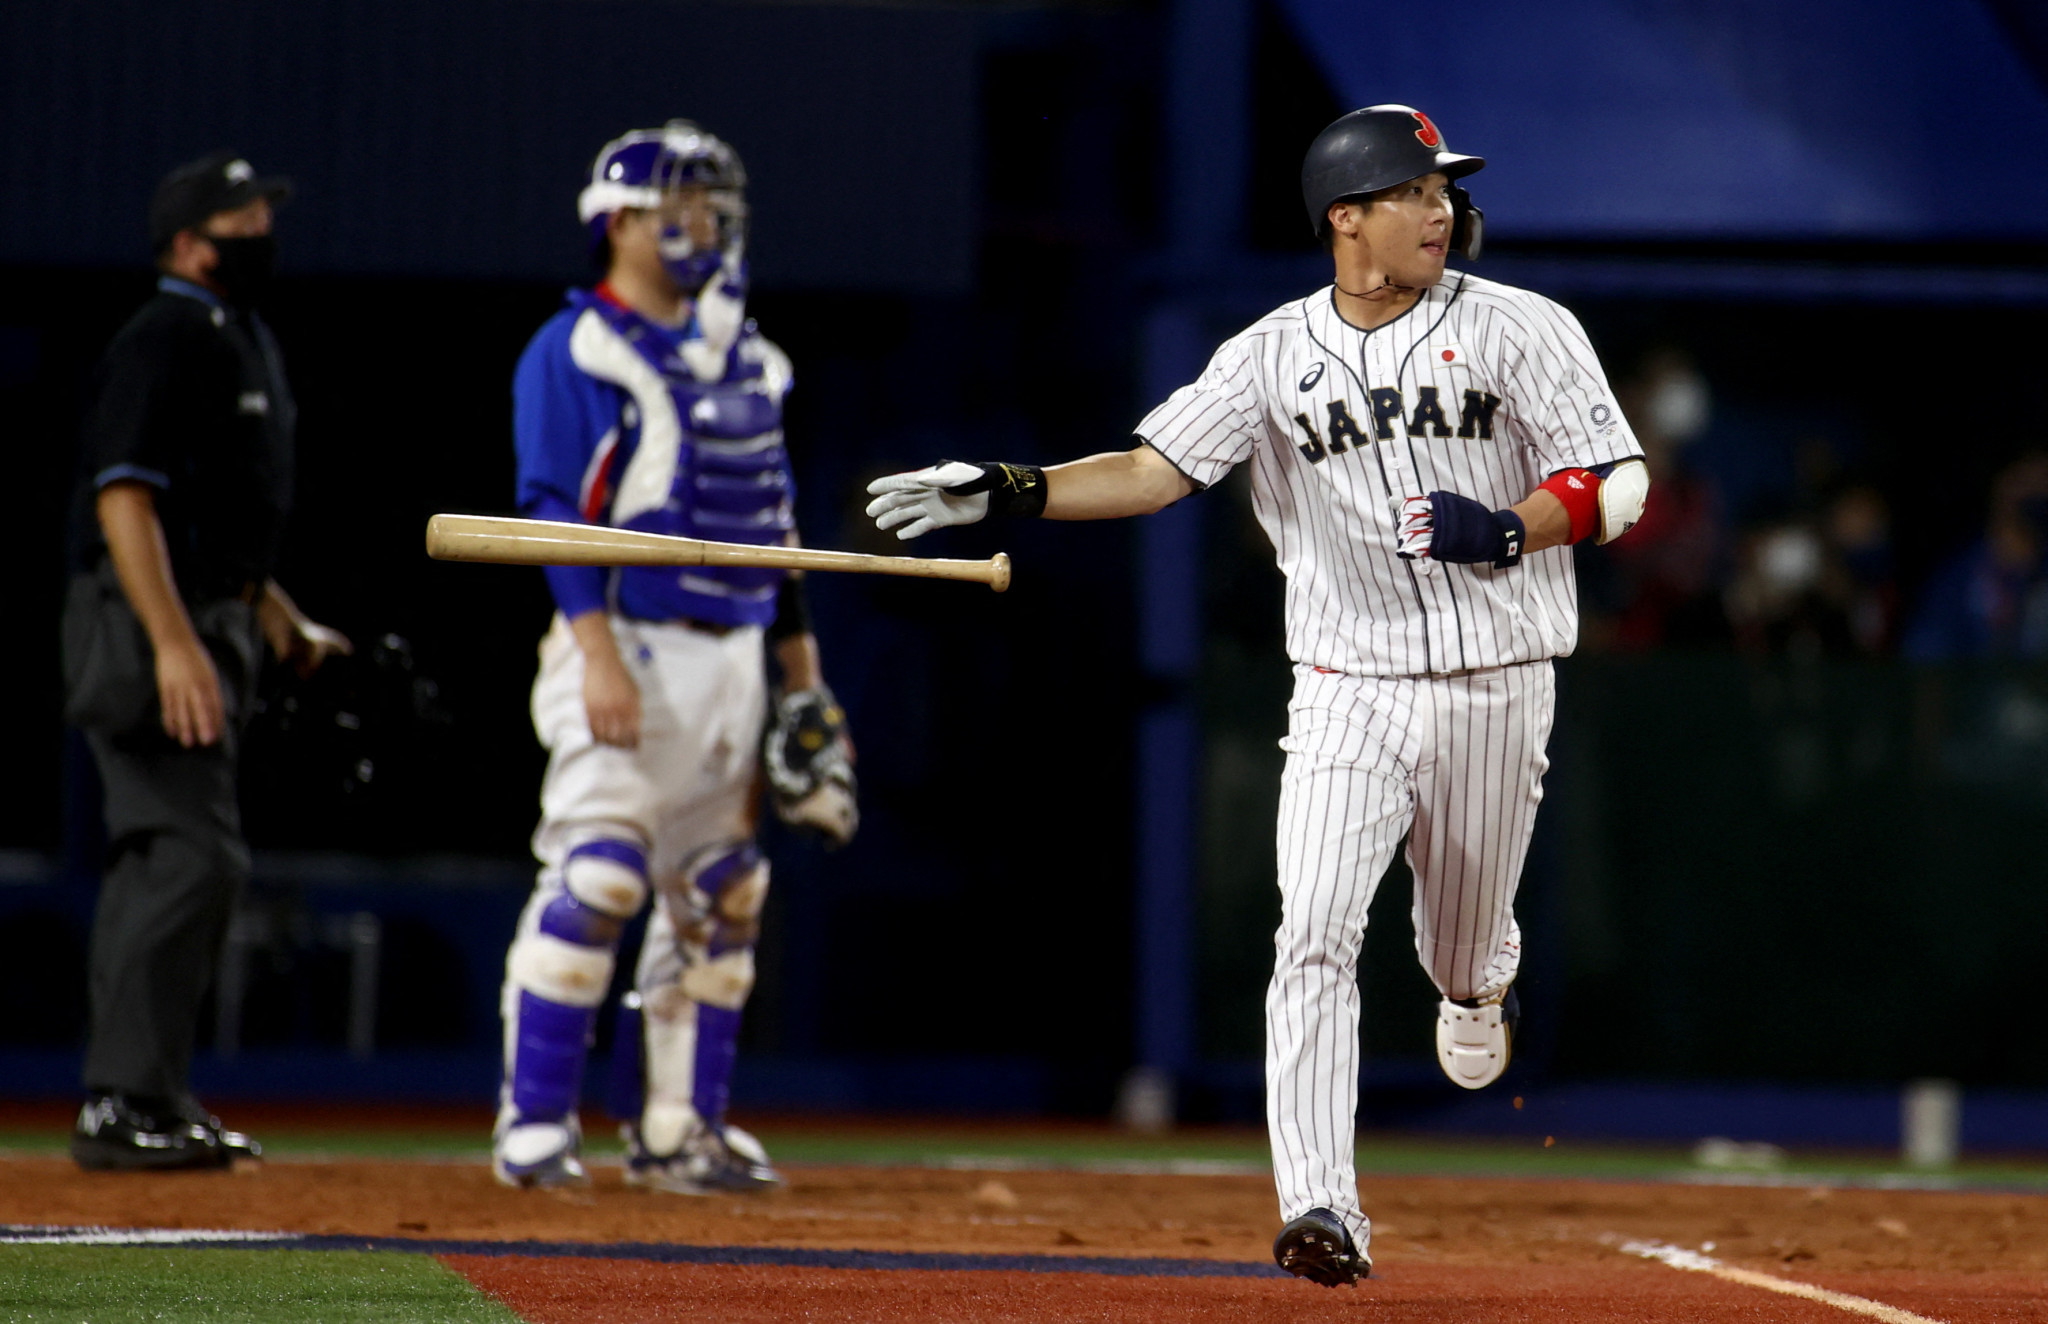 Japan's baseball side also reached a final today, seeing off South Korea thanks in large part to Tesuto Yamada's three runs batted in ©Getty Images